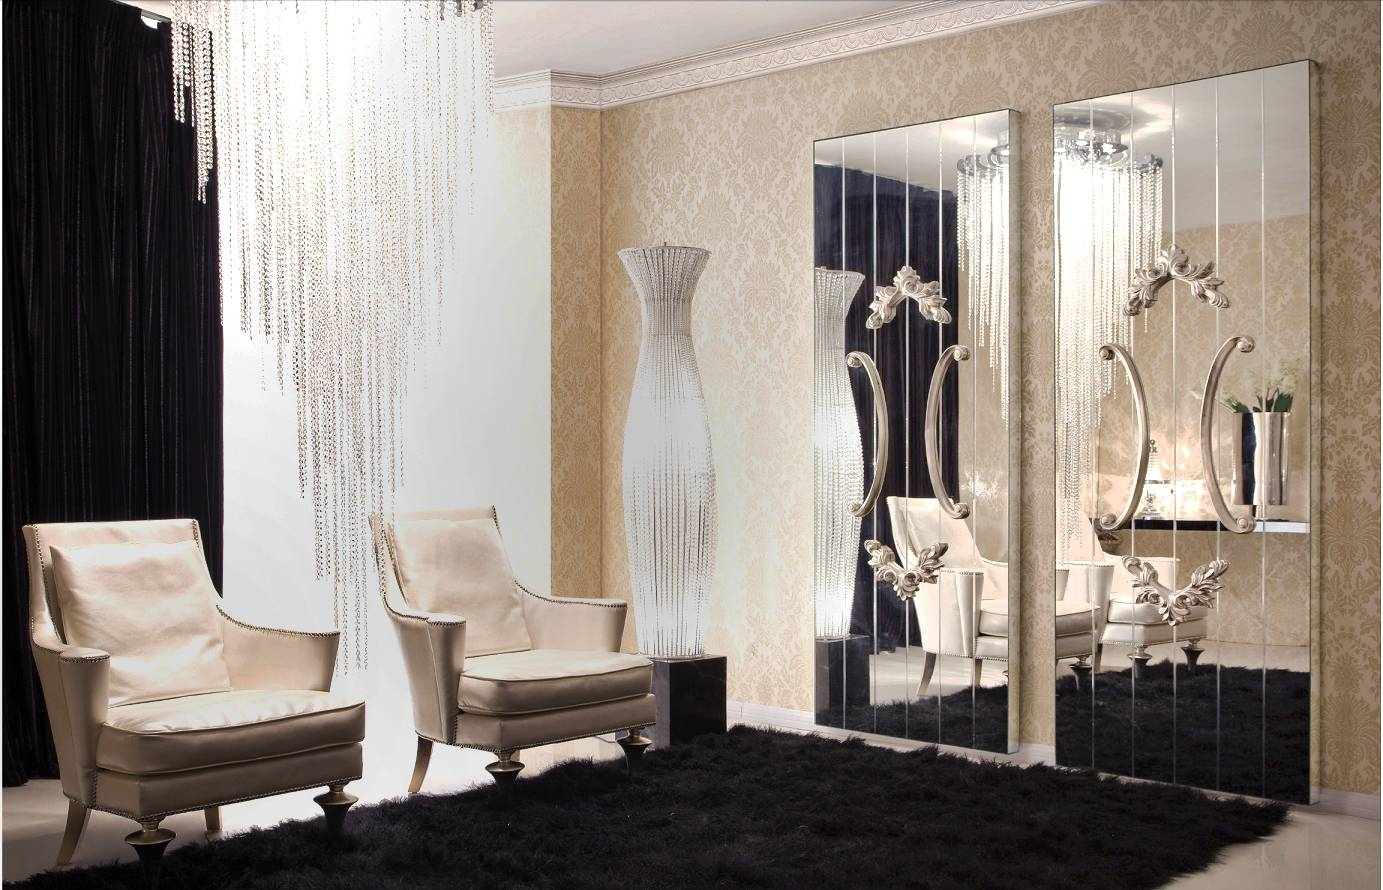 Mirrors: Glamorous Big Wall Mirrors Decorative Bathroom Mirrors Regarding Huge Wall Mirrors (View 15 of 15)